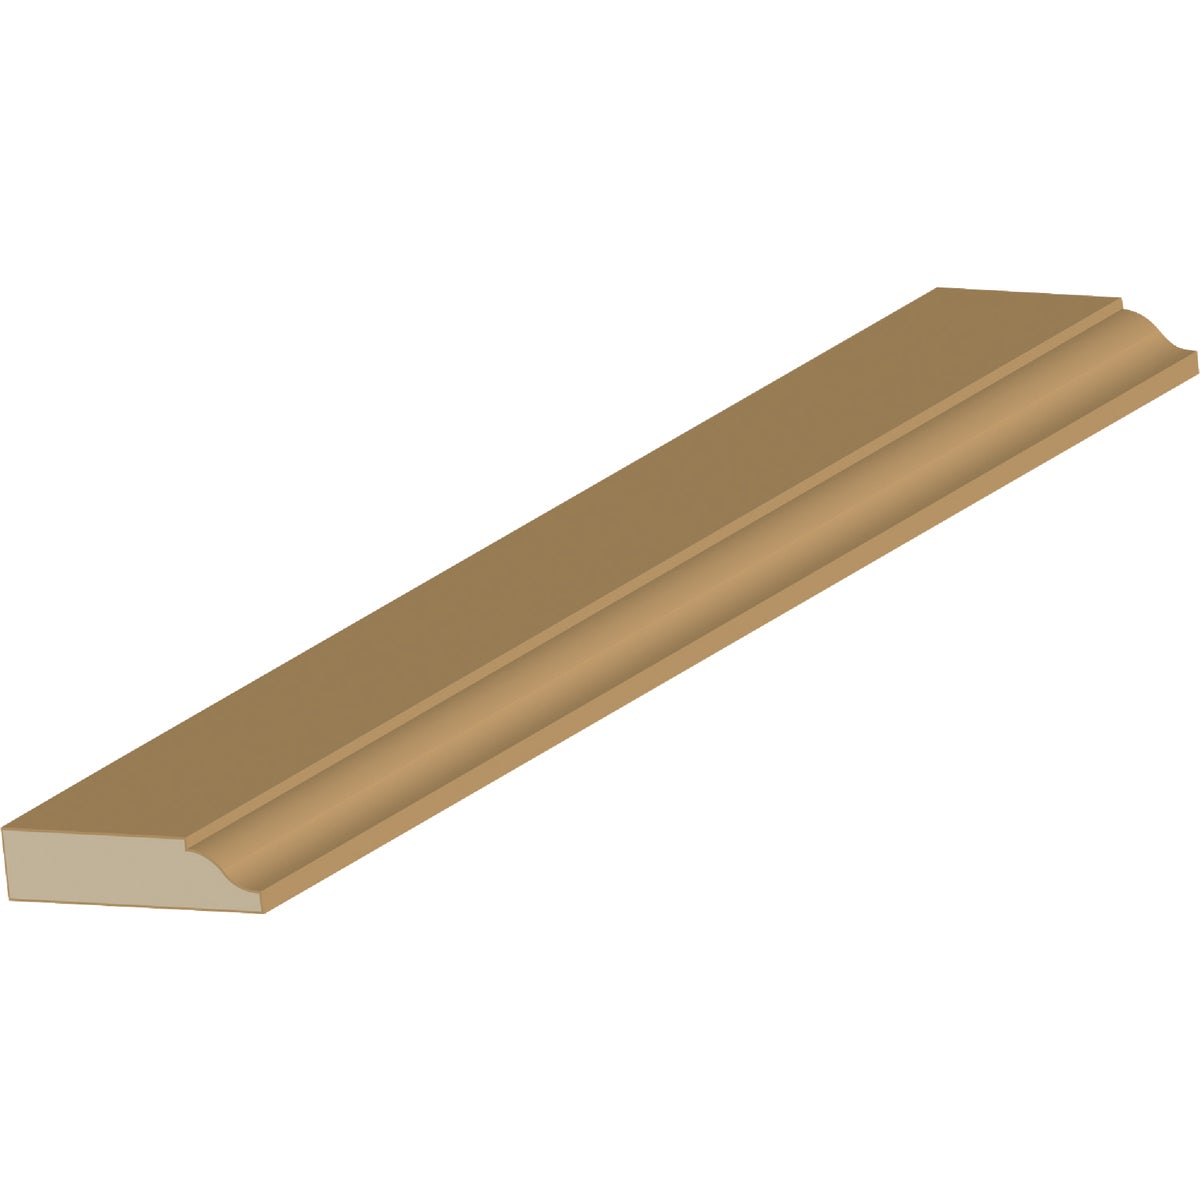 WM947 7' COL DOOR STOP - 94770RDIB by Jim White Millwork